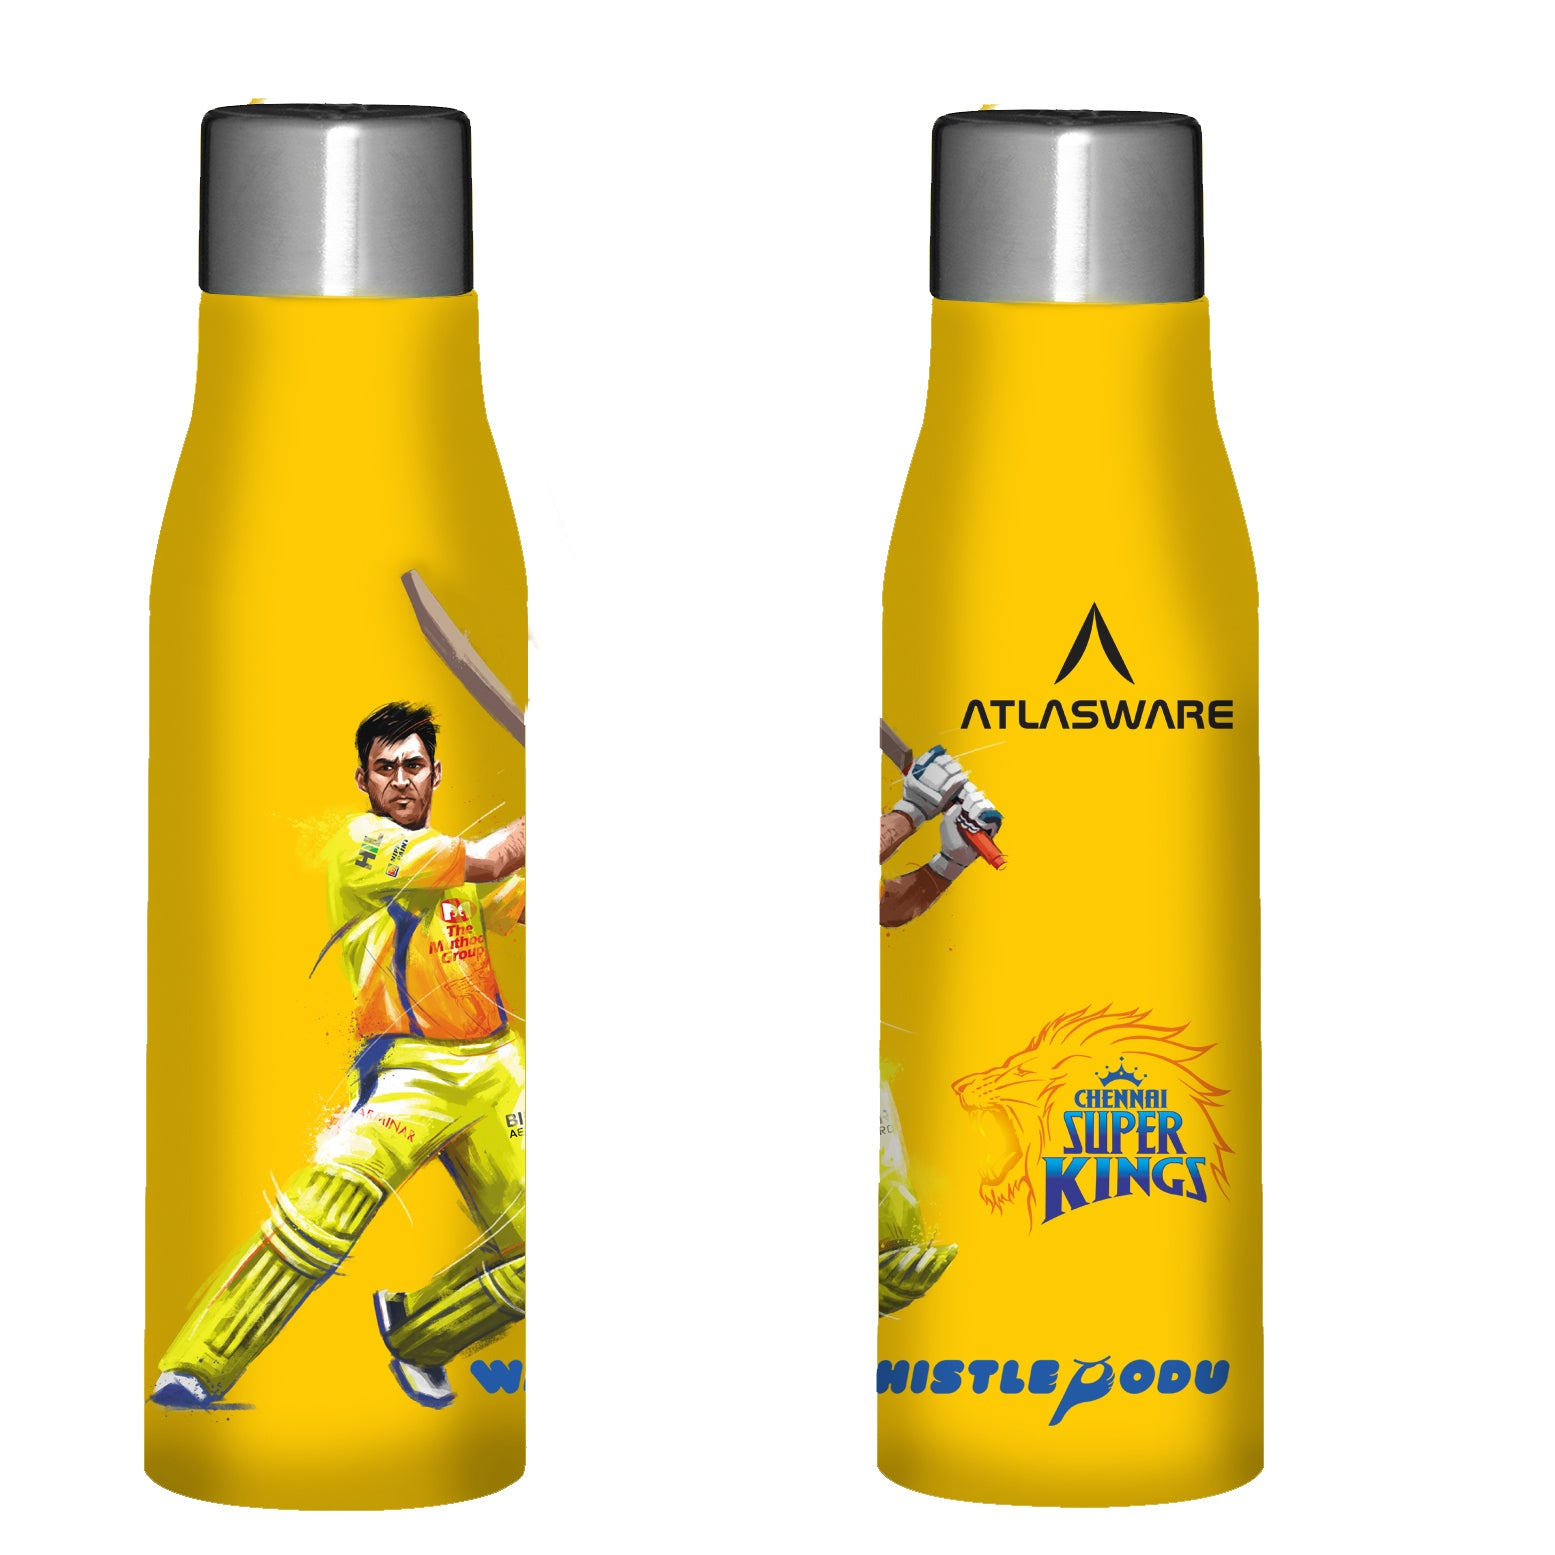 Chennai Super kings Thala shot stainless steel water bottle yellow